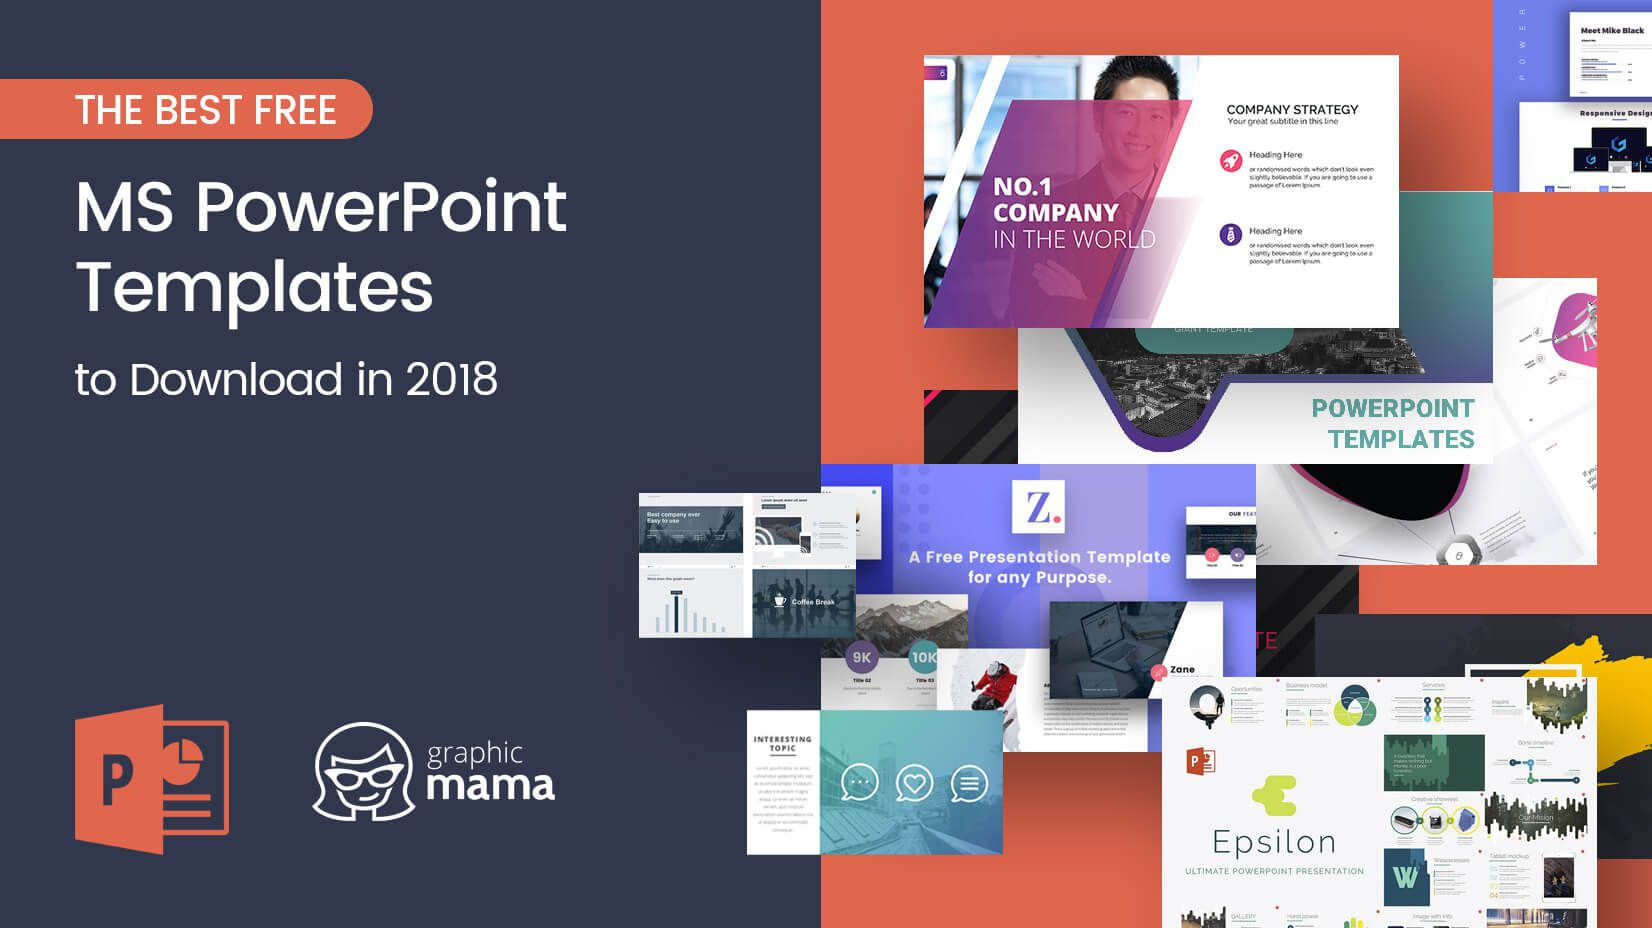 008 Unbelievable Professional Powerpoint Template Free Idea  Download 2019 Medical MacFull